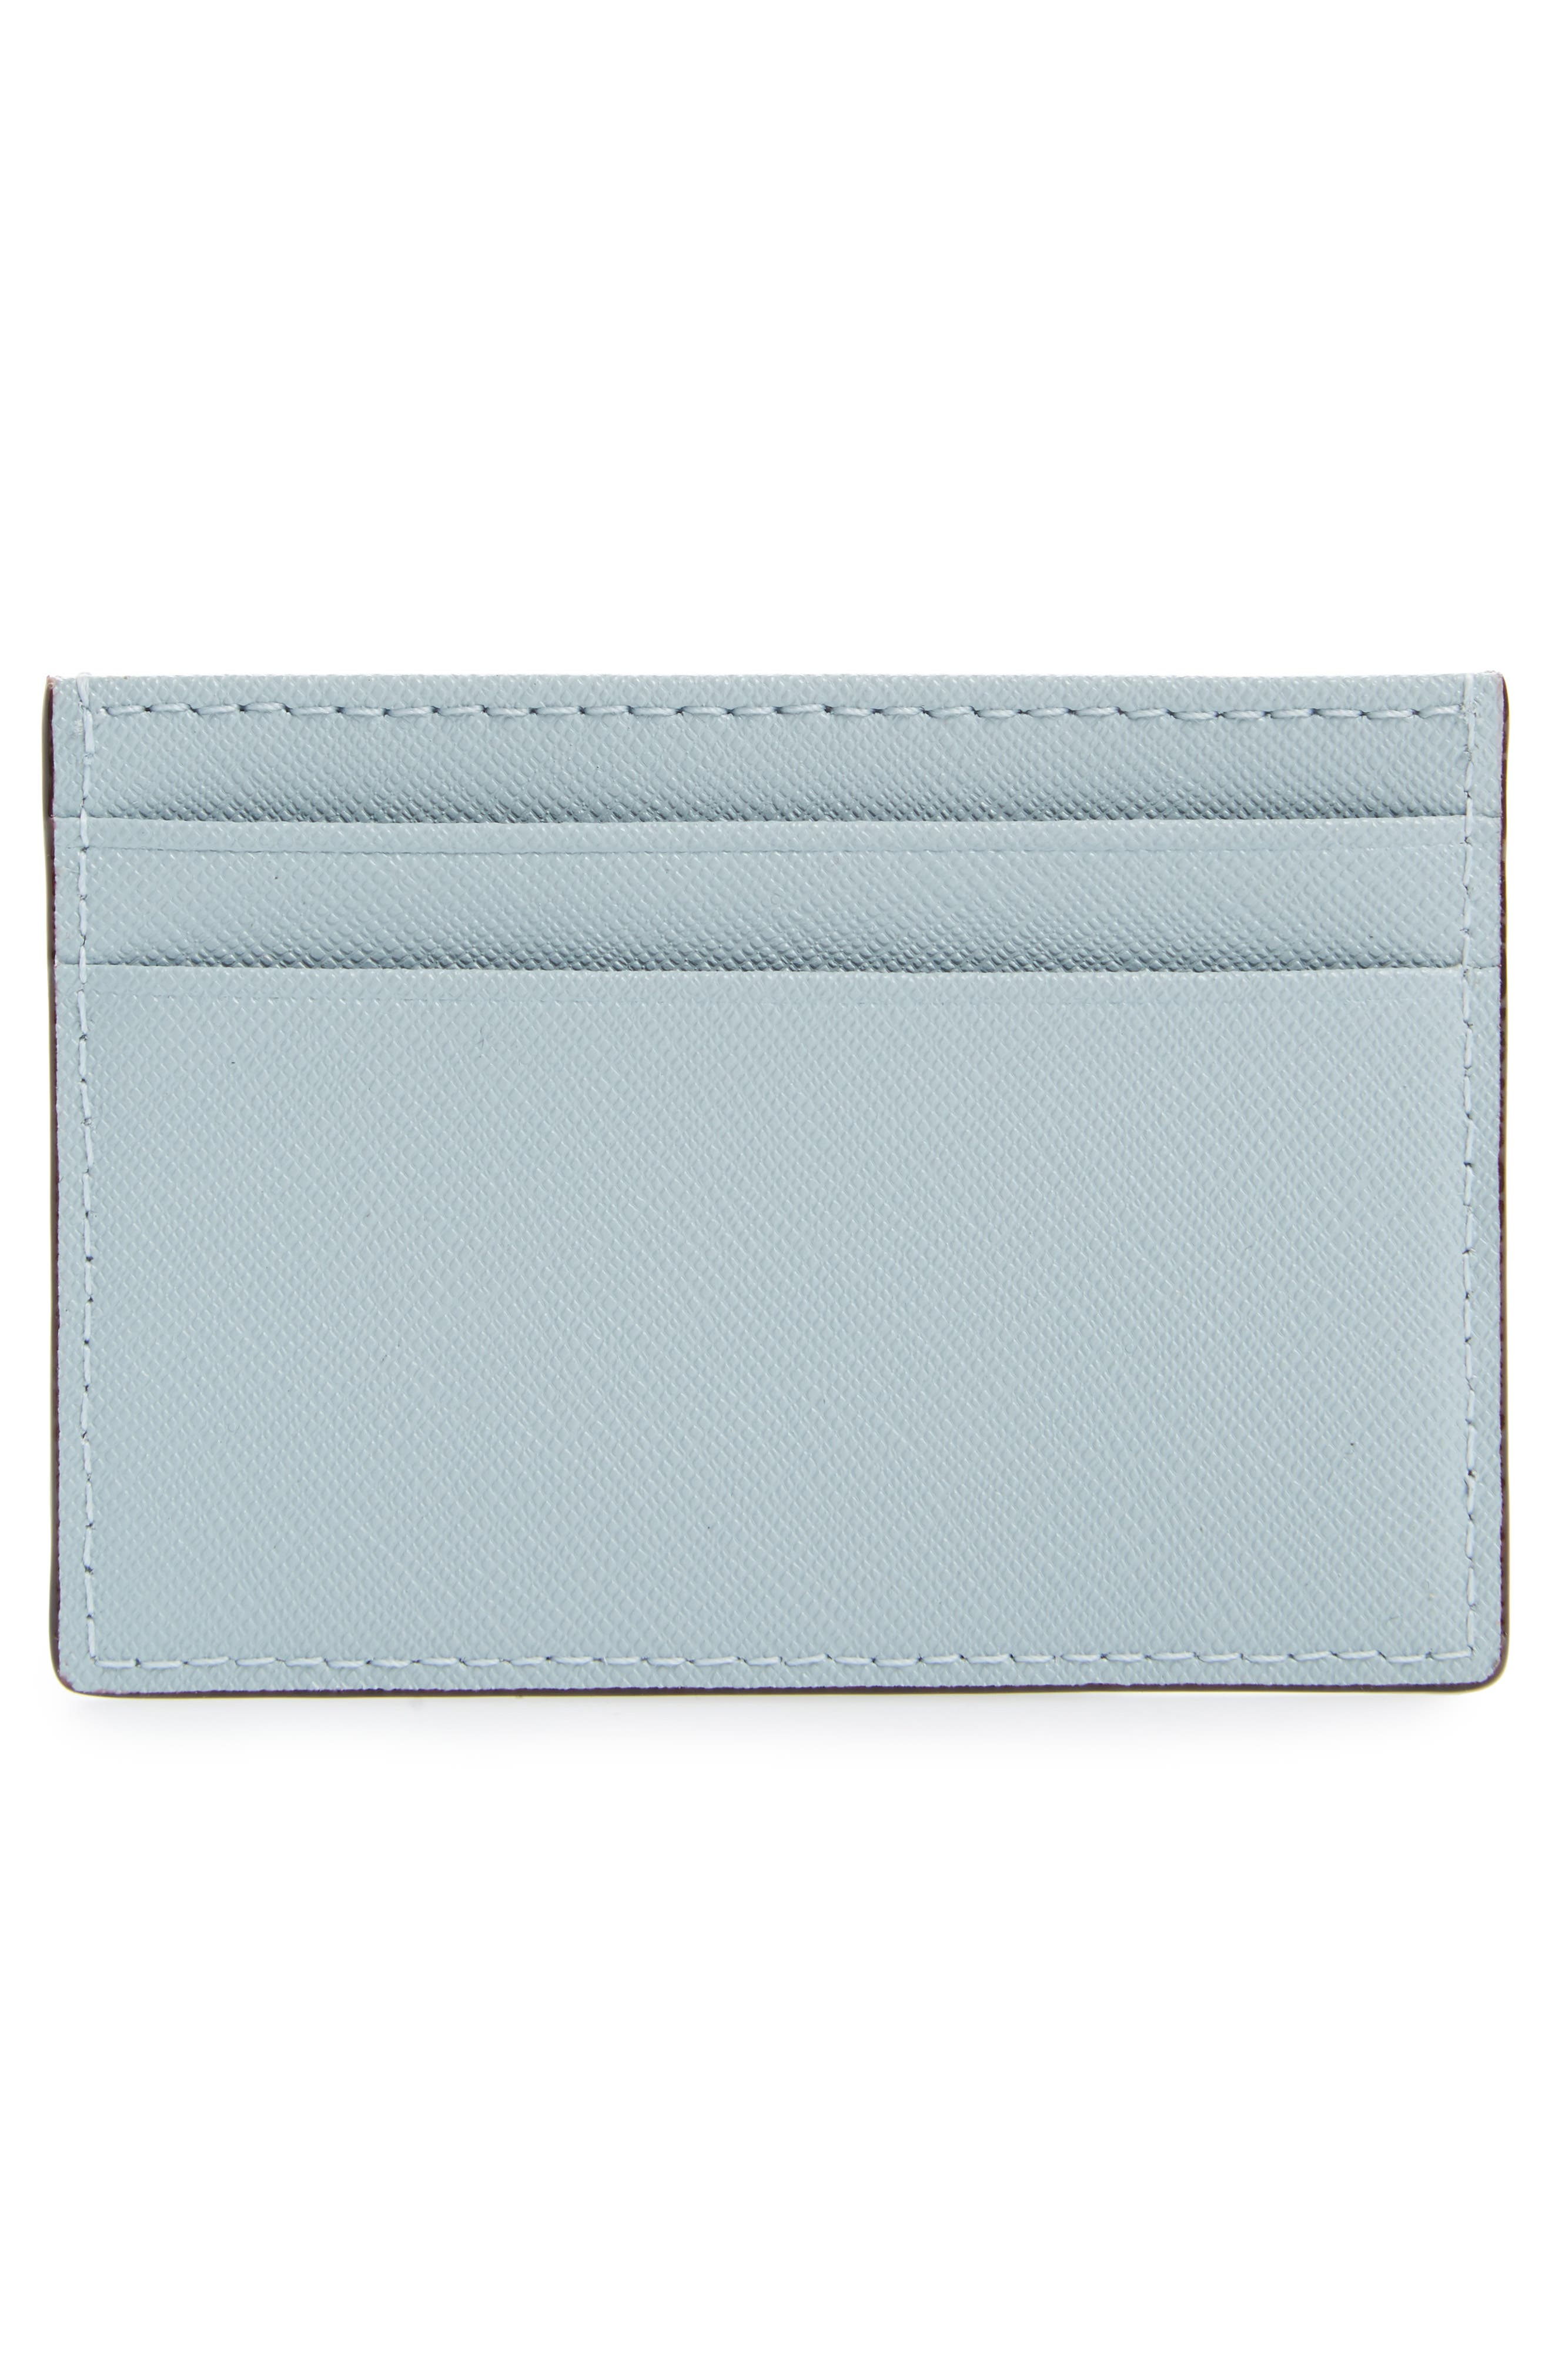 cameron street card holder,                             Alternate thumbnail 15, color,